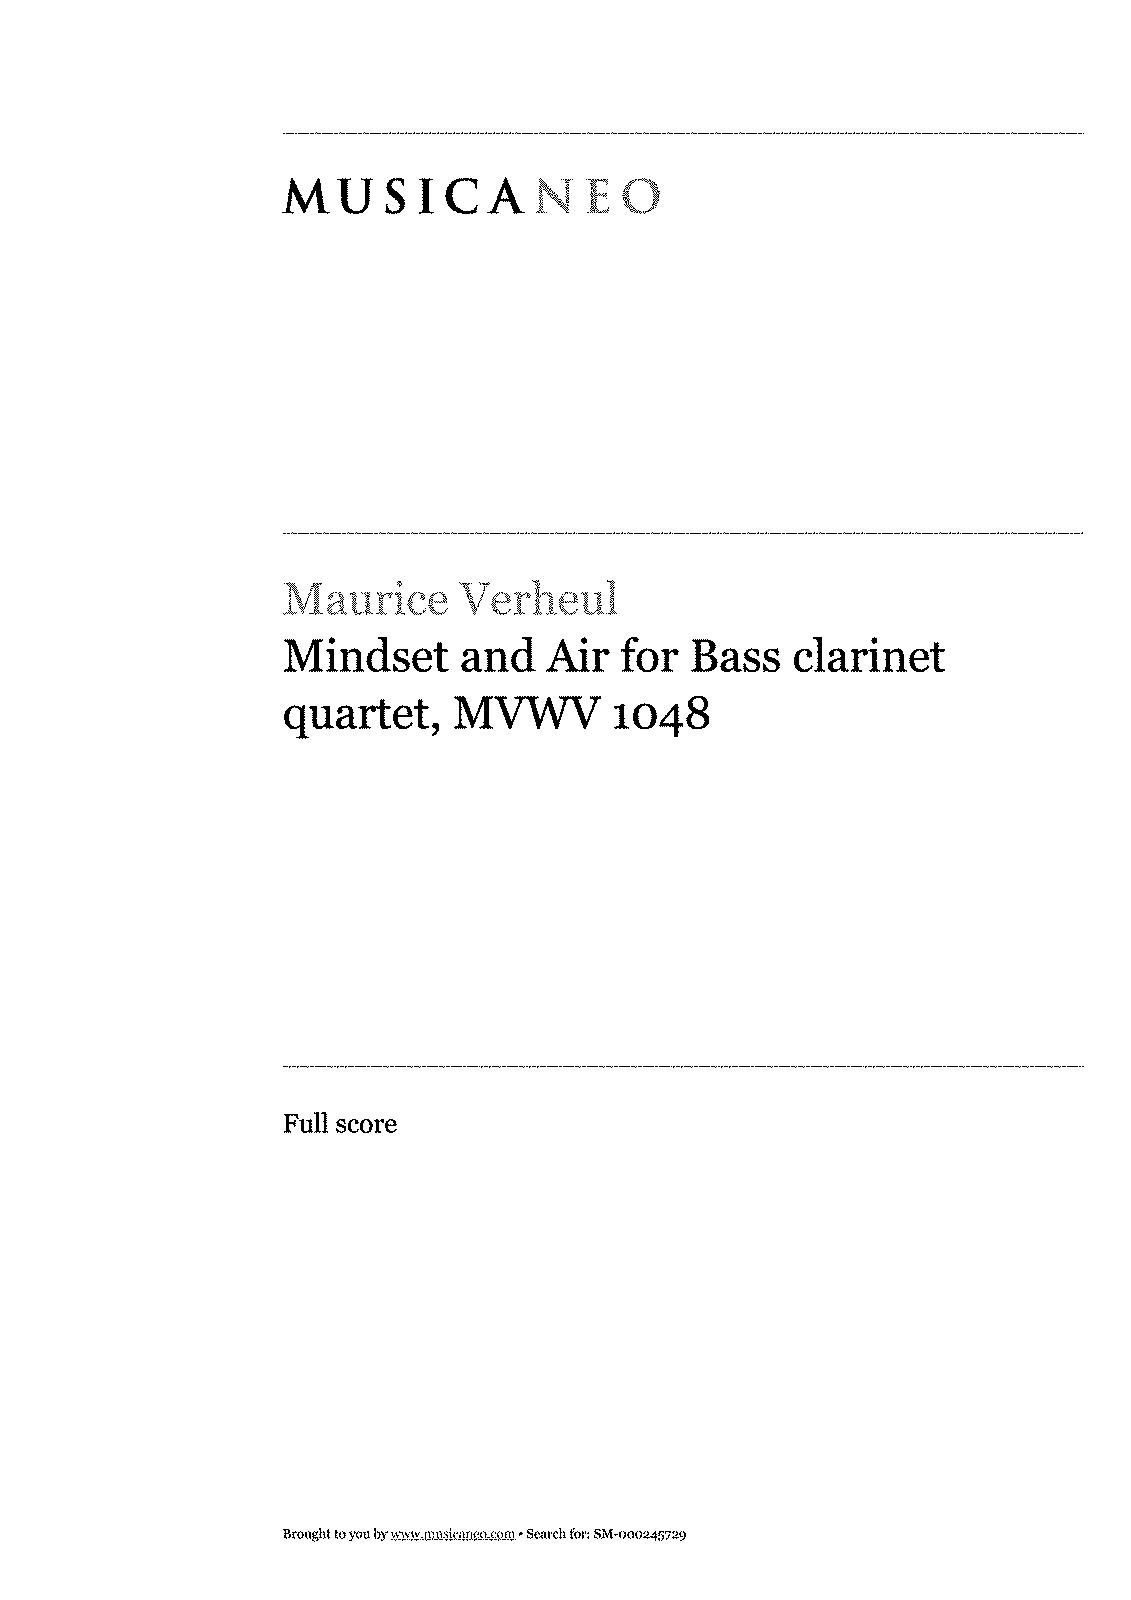 PMLP718735-mindset and air for bass clarinet quartet mvwv 1048.pdf